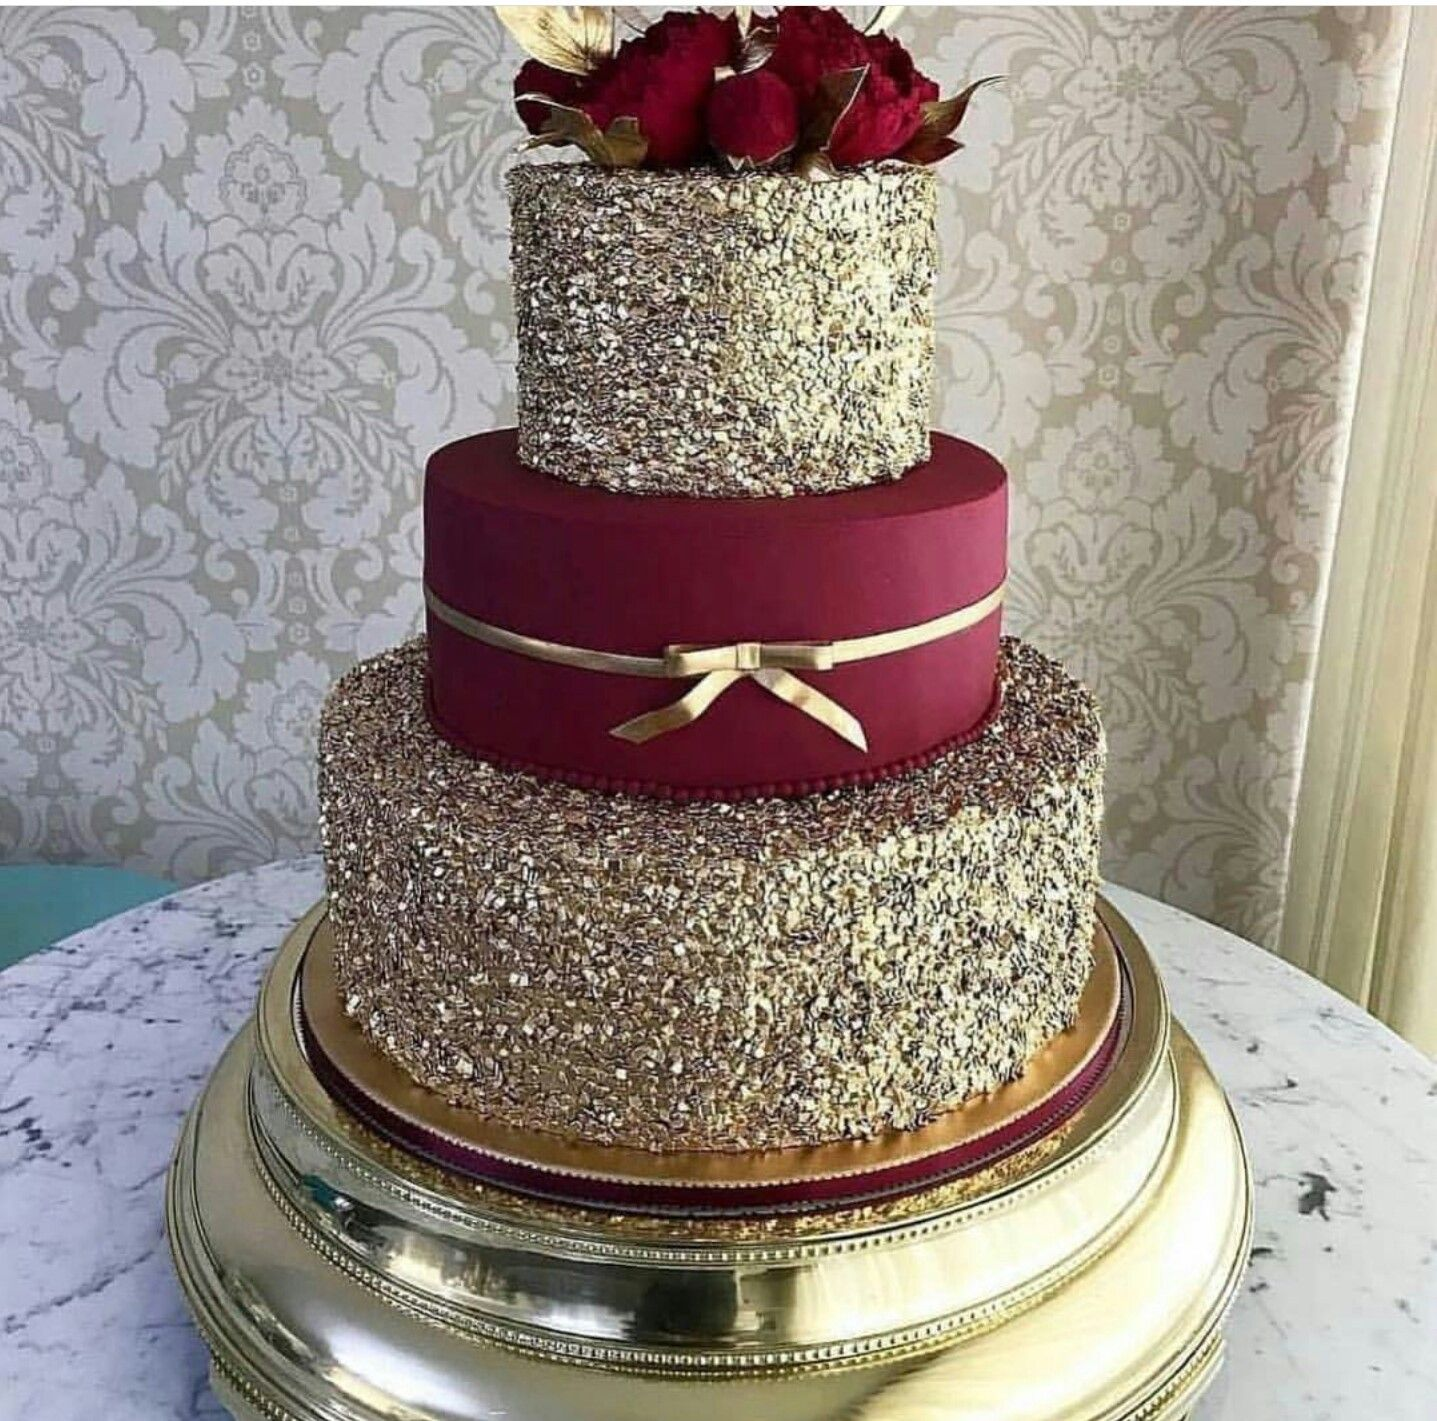 Gold Wedding Cake Decorations: Burgundy And Gold Cake For Wedding